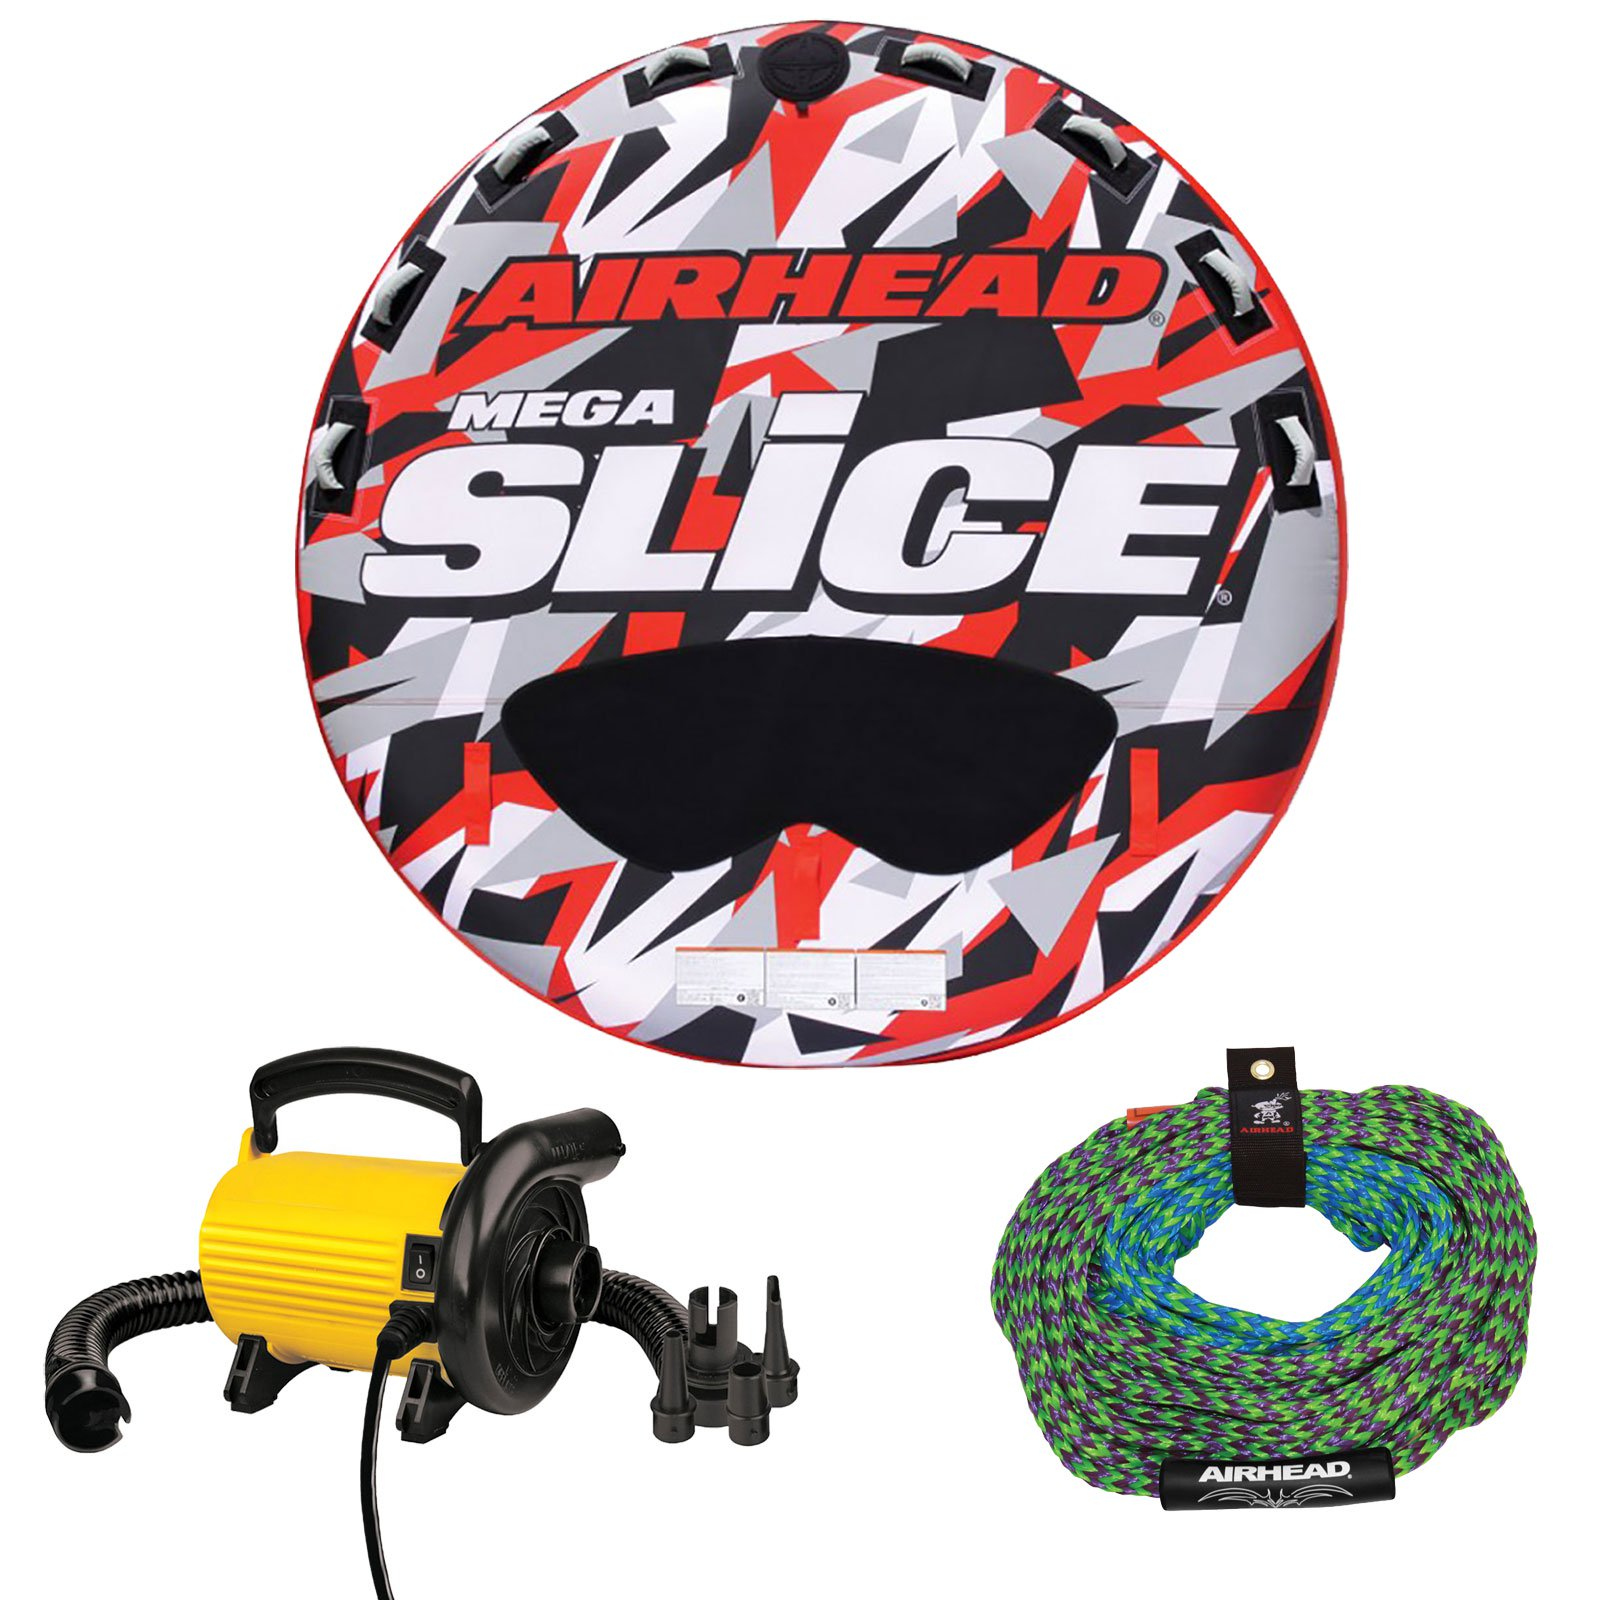 Sportsstuff Stunt Flyer 1-2 Person Inflatable Towable Tube w  Tow Rope and Pump by Kwik Tek